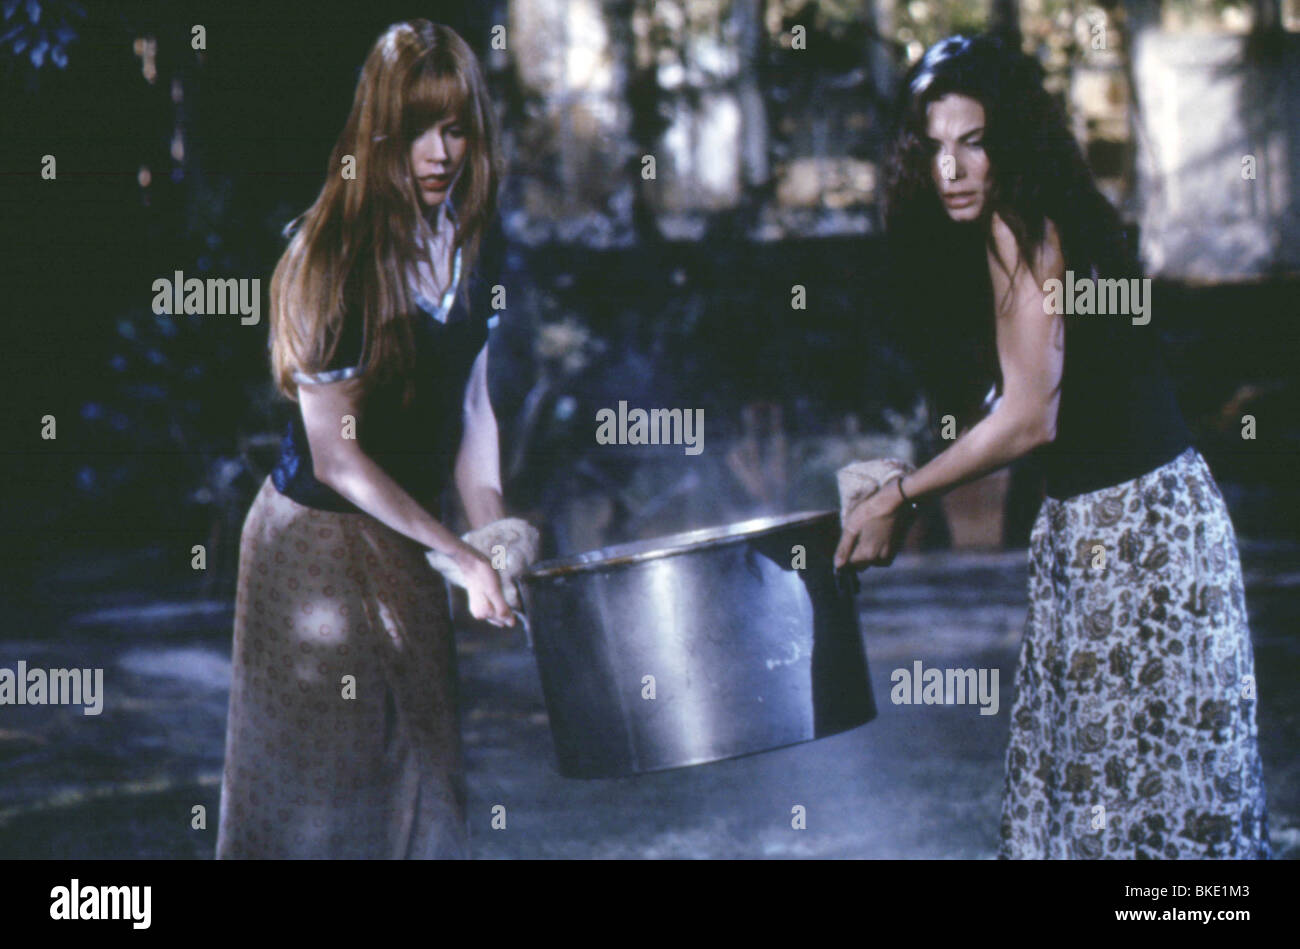 PRACTICAL MAGIC (1999) NICOLE KIDMAN, SANDRA BULLOCK PRMG 043 - Stock Image